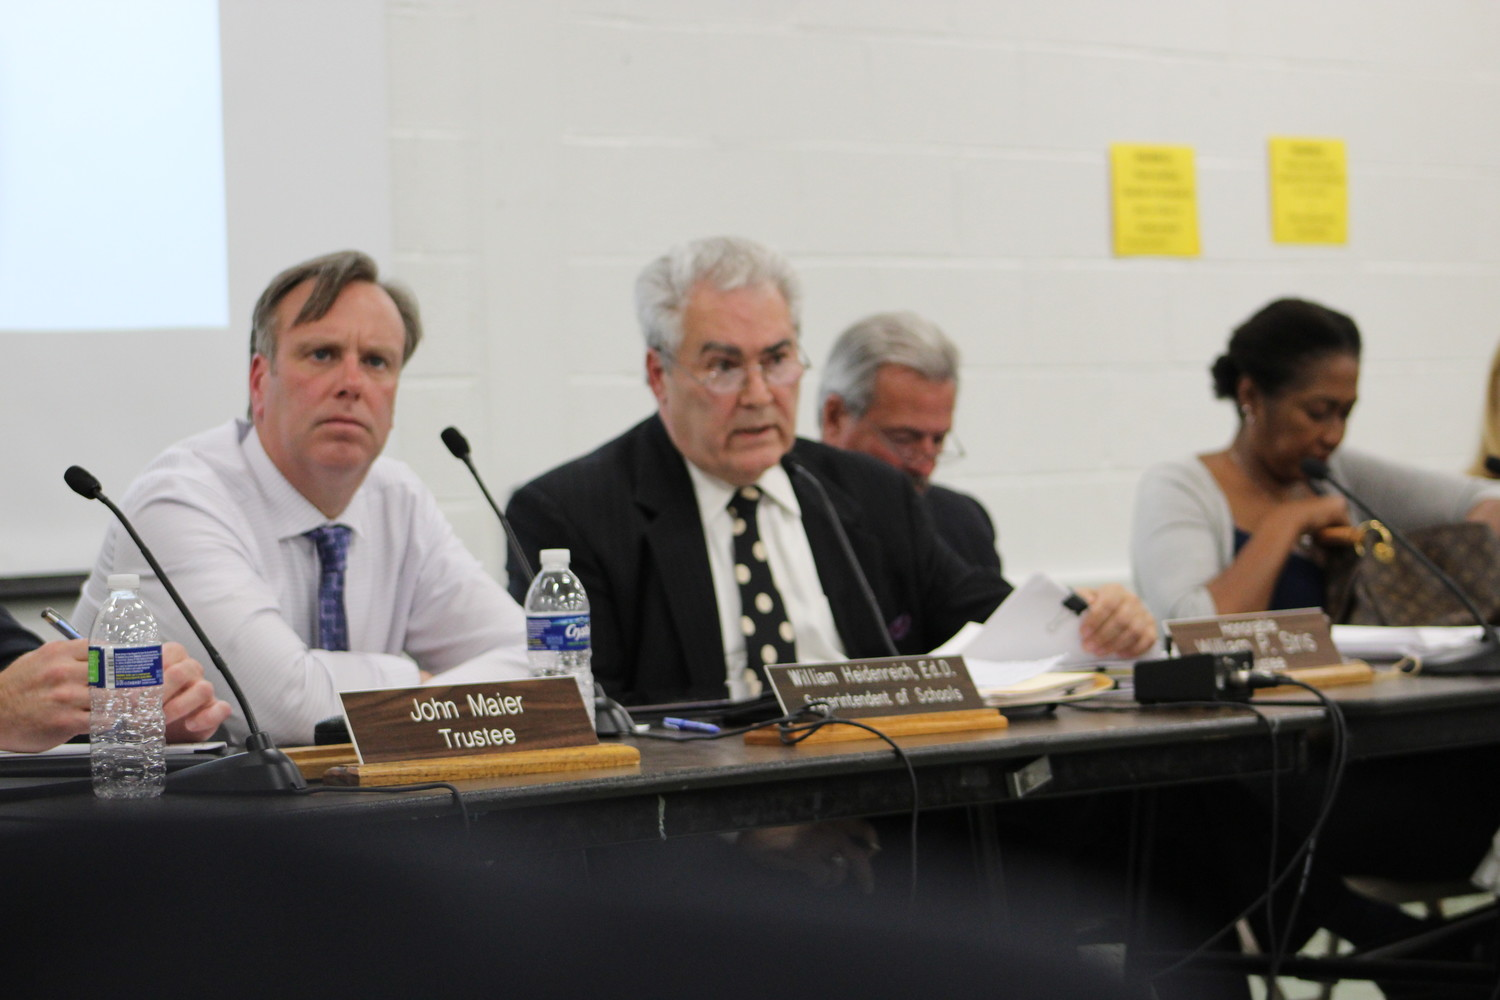 Superintendent Bill Heidenreich, left, and school board President William Stris listened as residents discussed the waiver policy issue at an Aug. 29 board meeting.